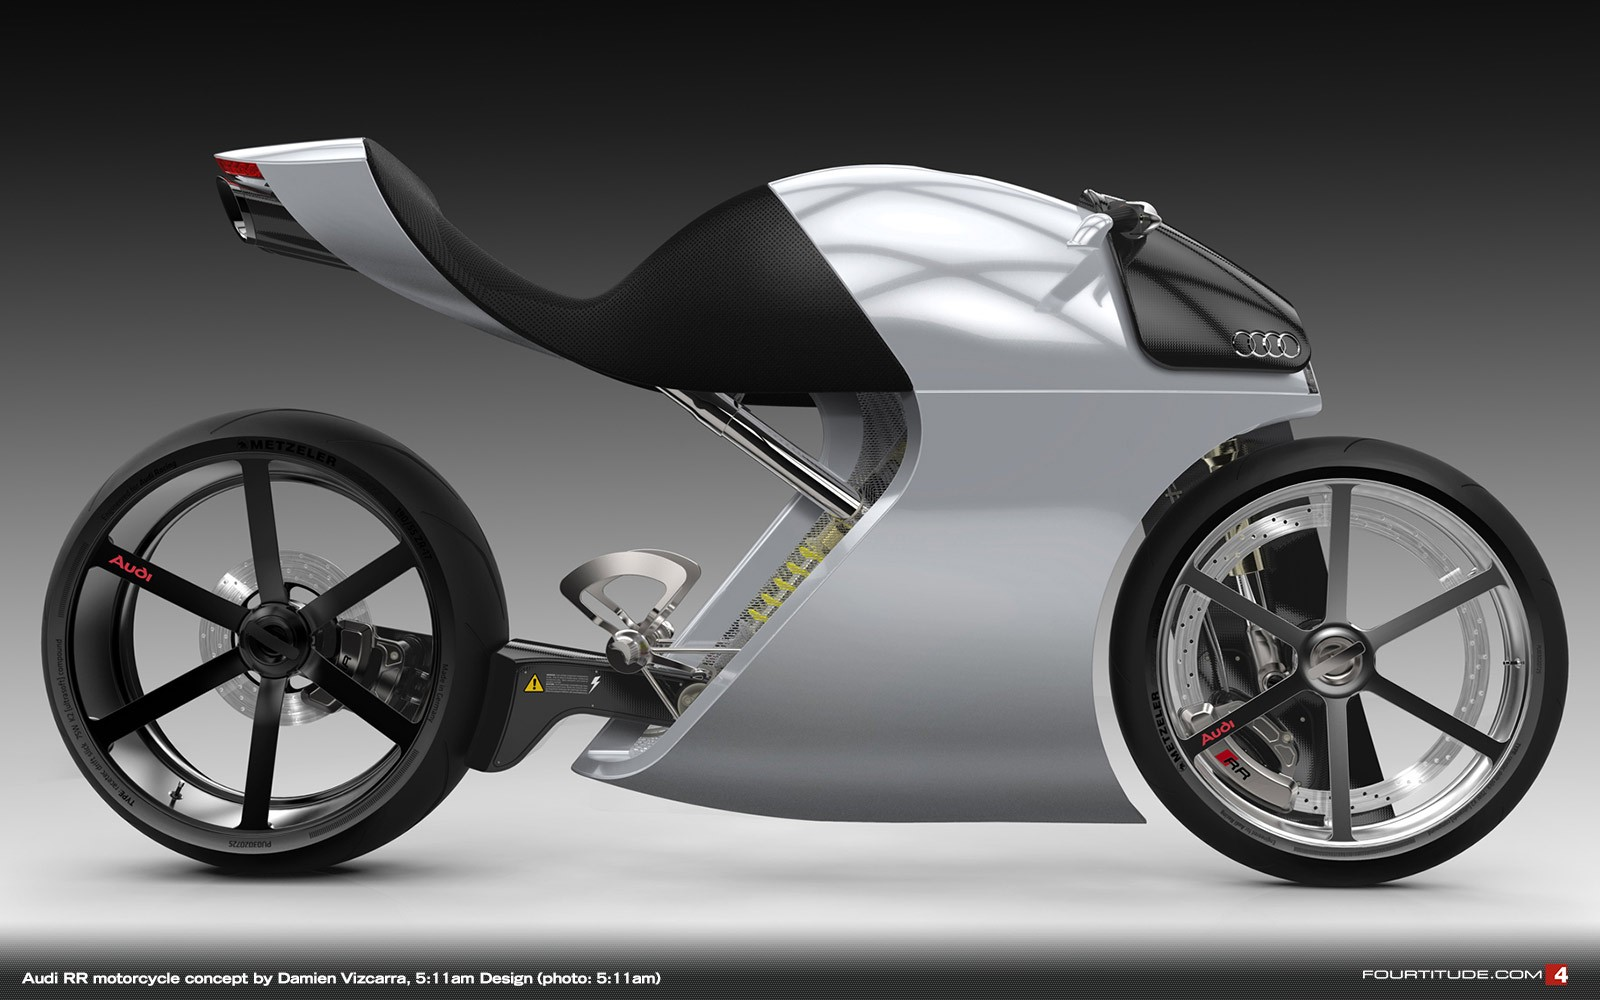 Audi Rr Concept Bike Is A Glimpse Into The Future